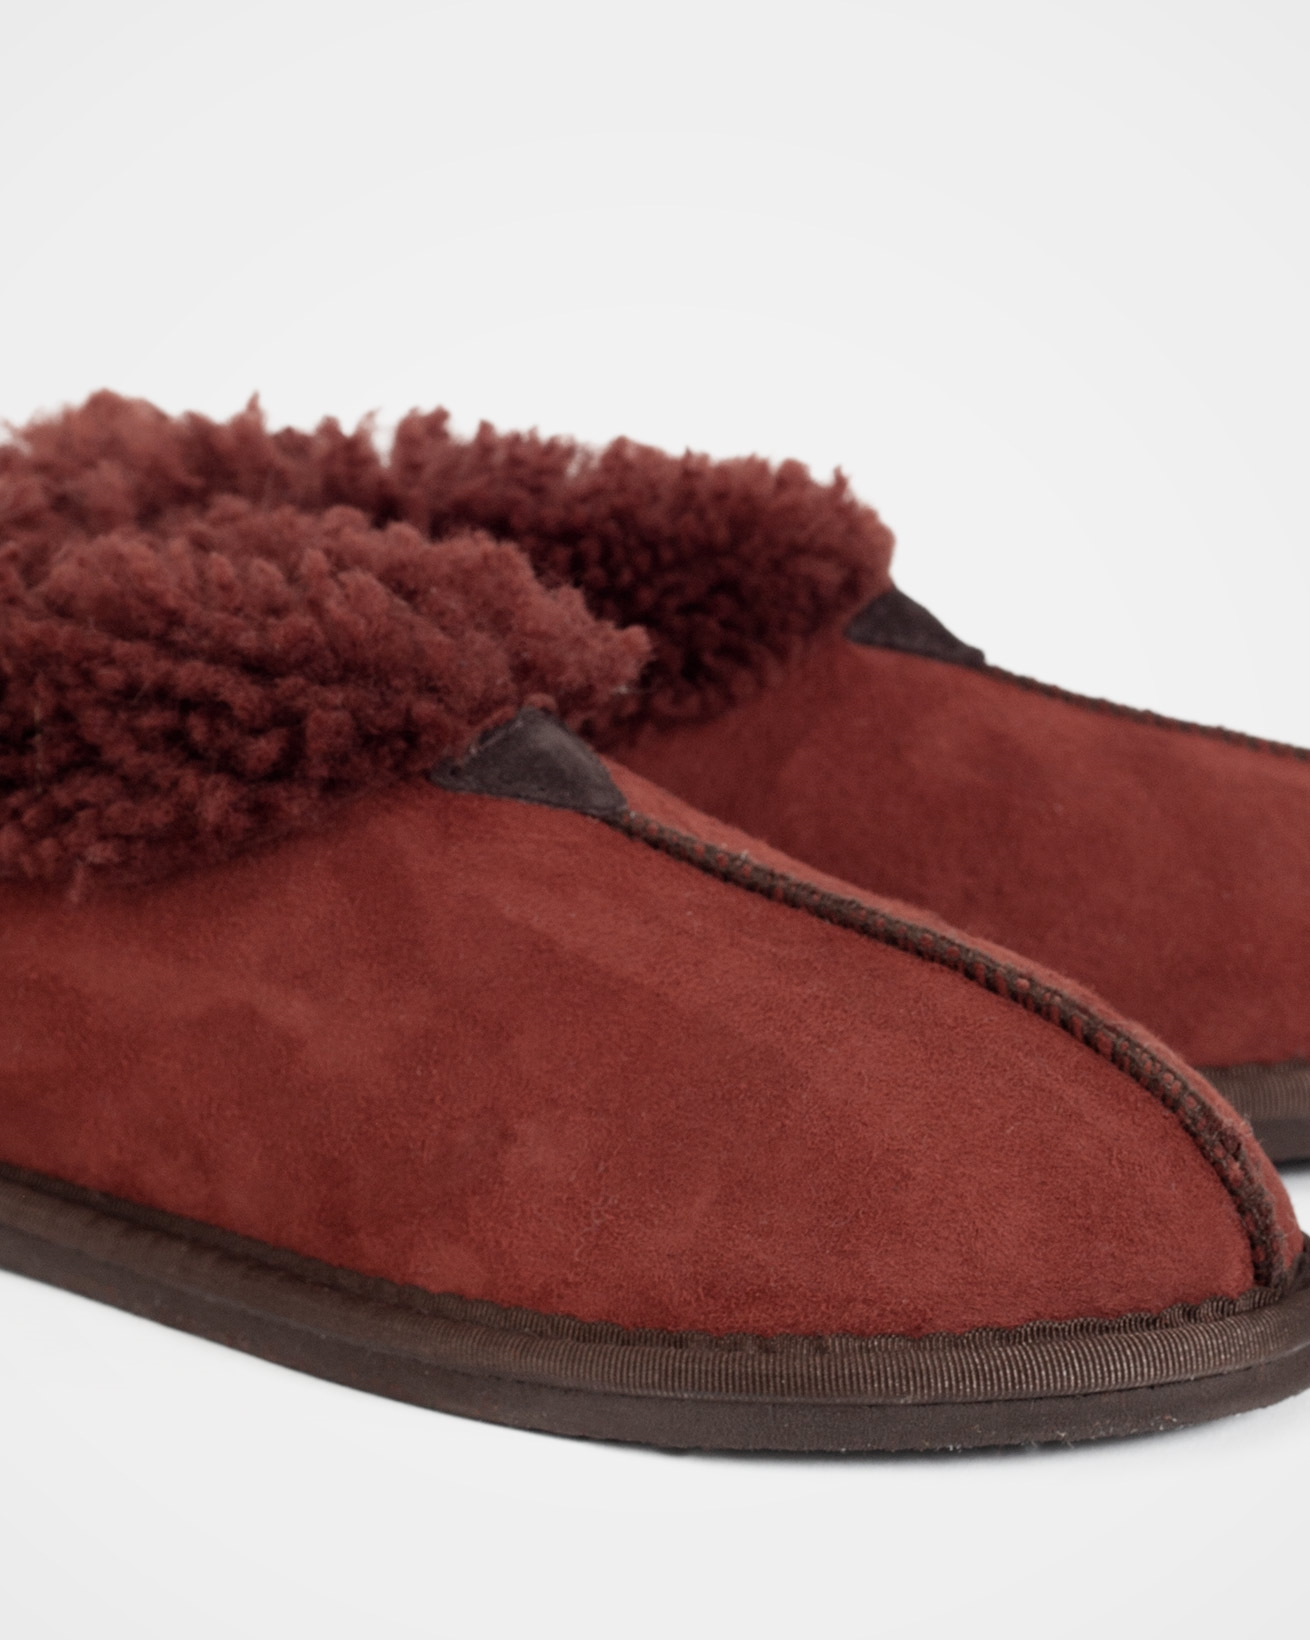 2100_ladies-sheepskin-bootee-slippers_conker_detail.jpg